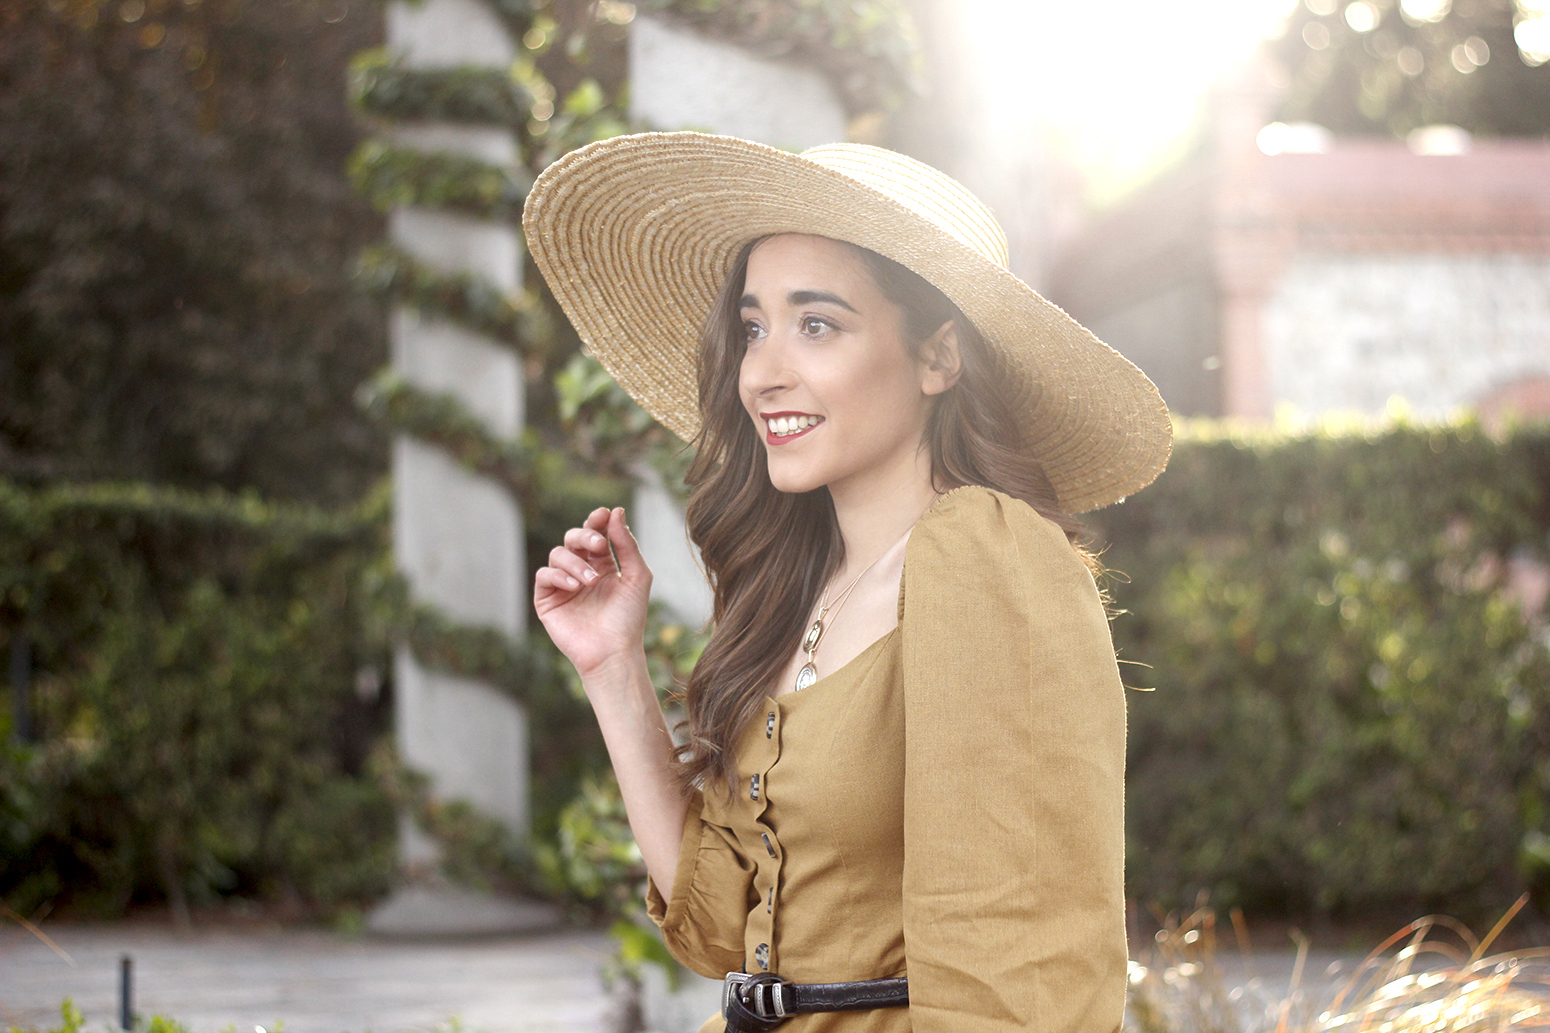 khaki linen dress black sandals straw hat street style spring outfit8